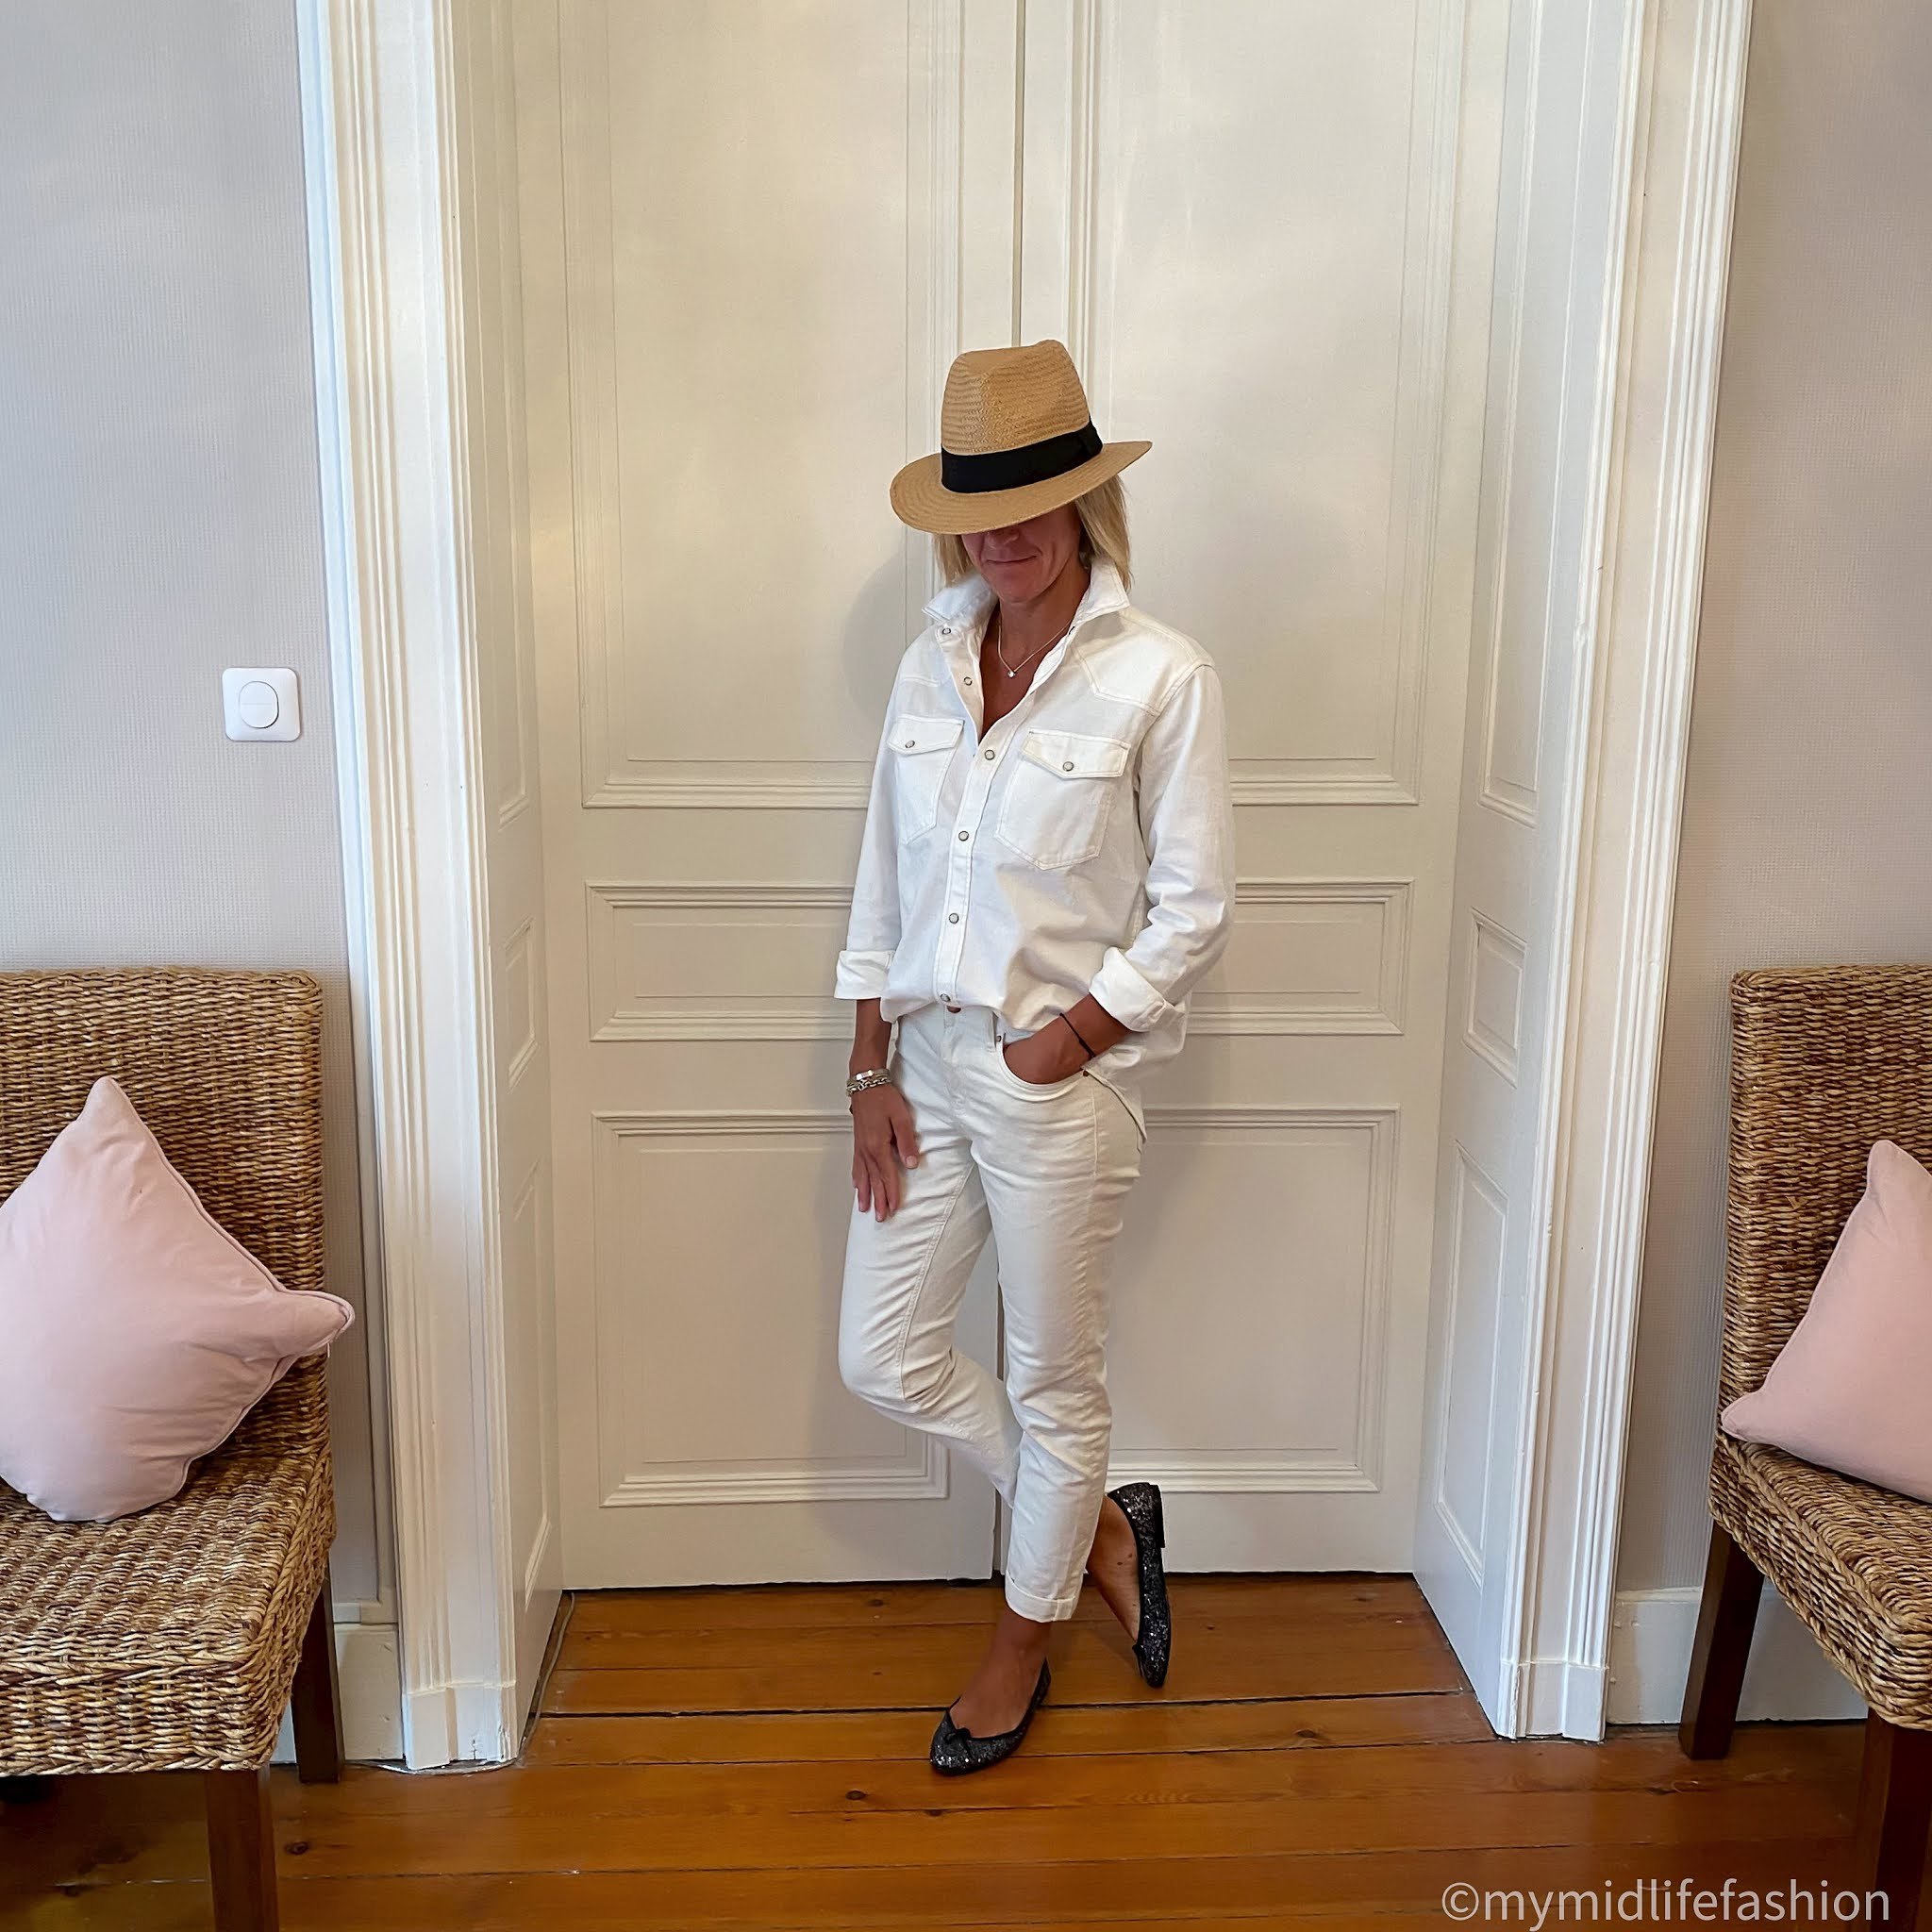 my midlife fashion, h and m Panama hat, h and m conscious denim shirt, boden girlfriend jeans, French sole Henriette glitter ballet pumps